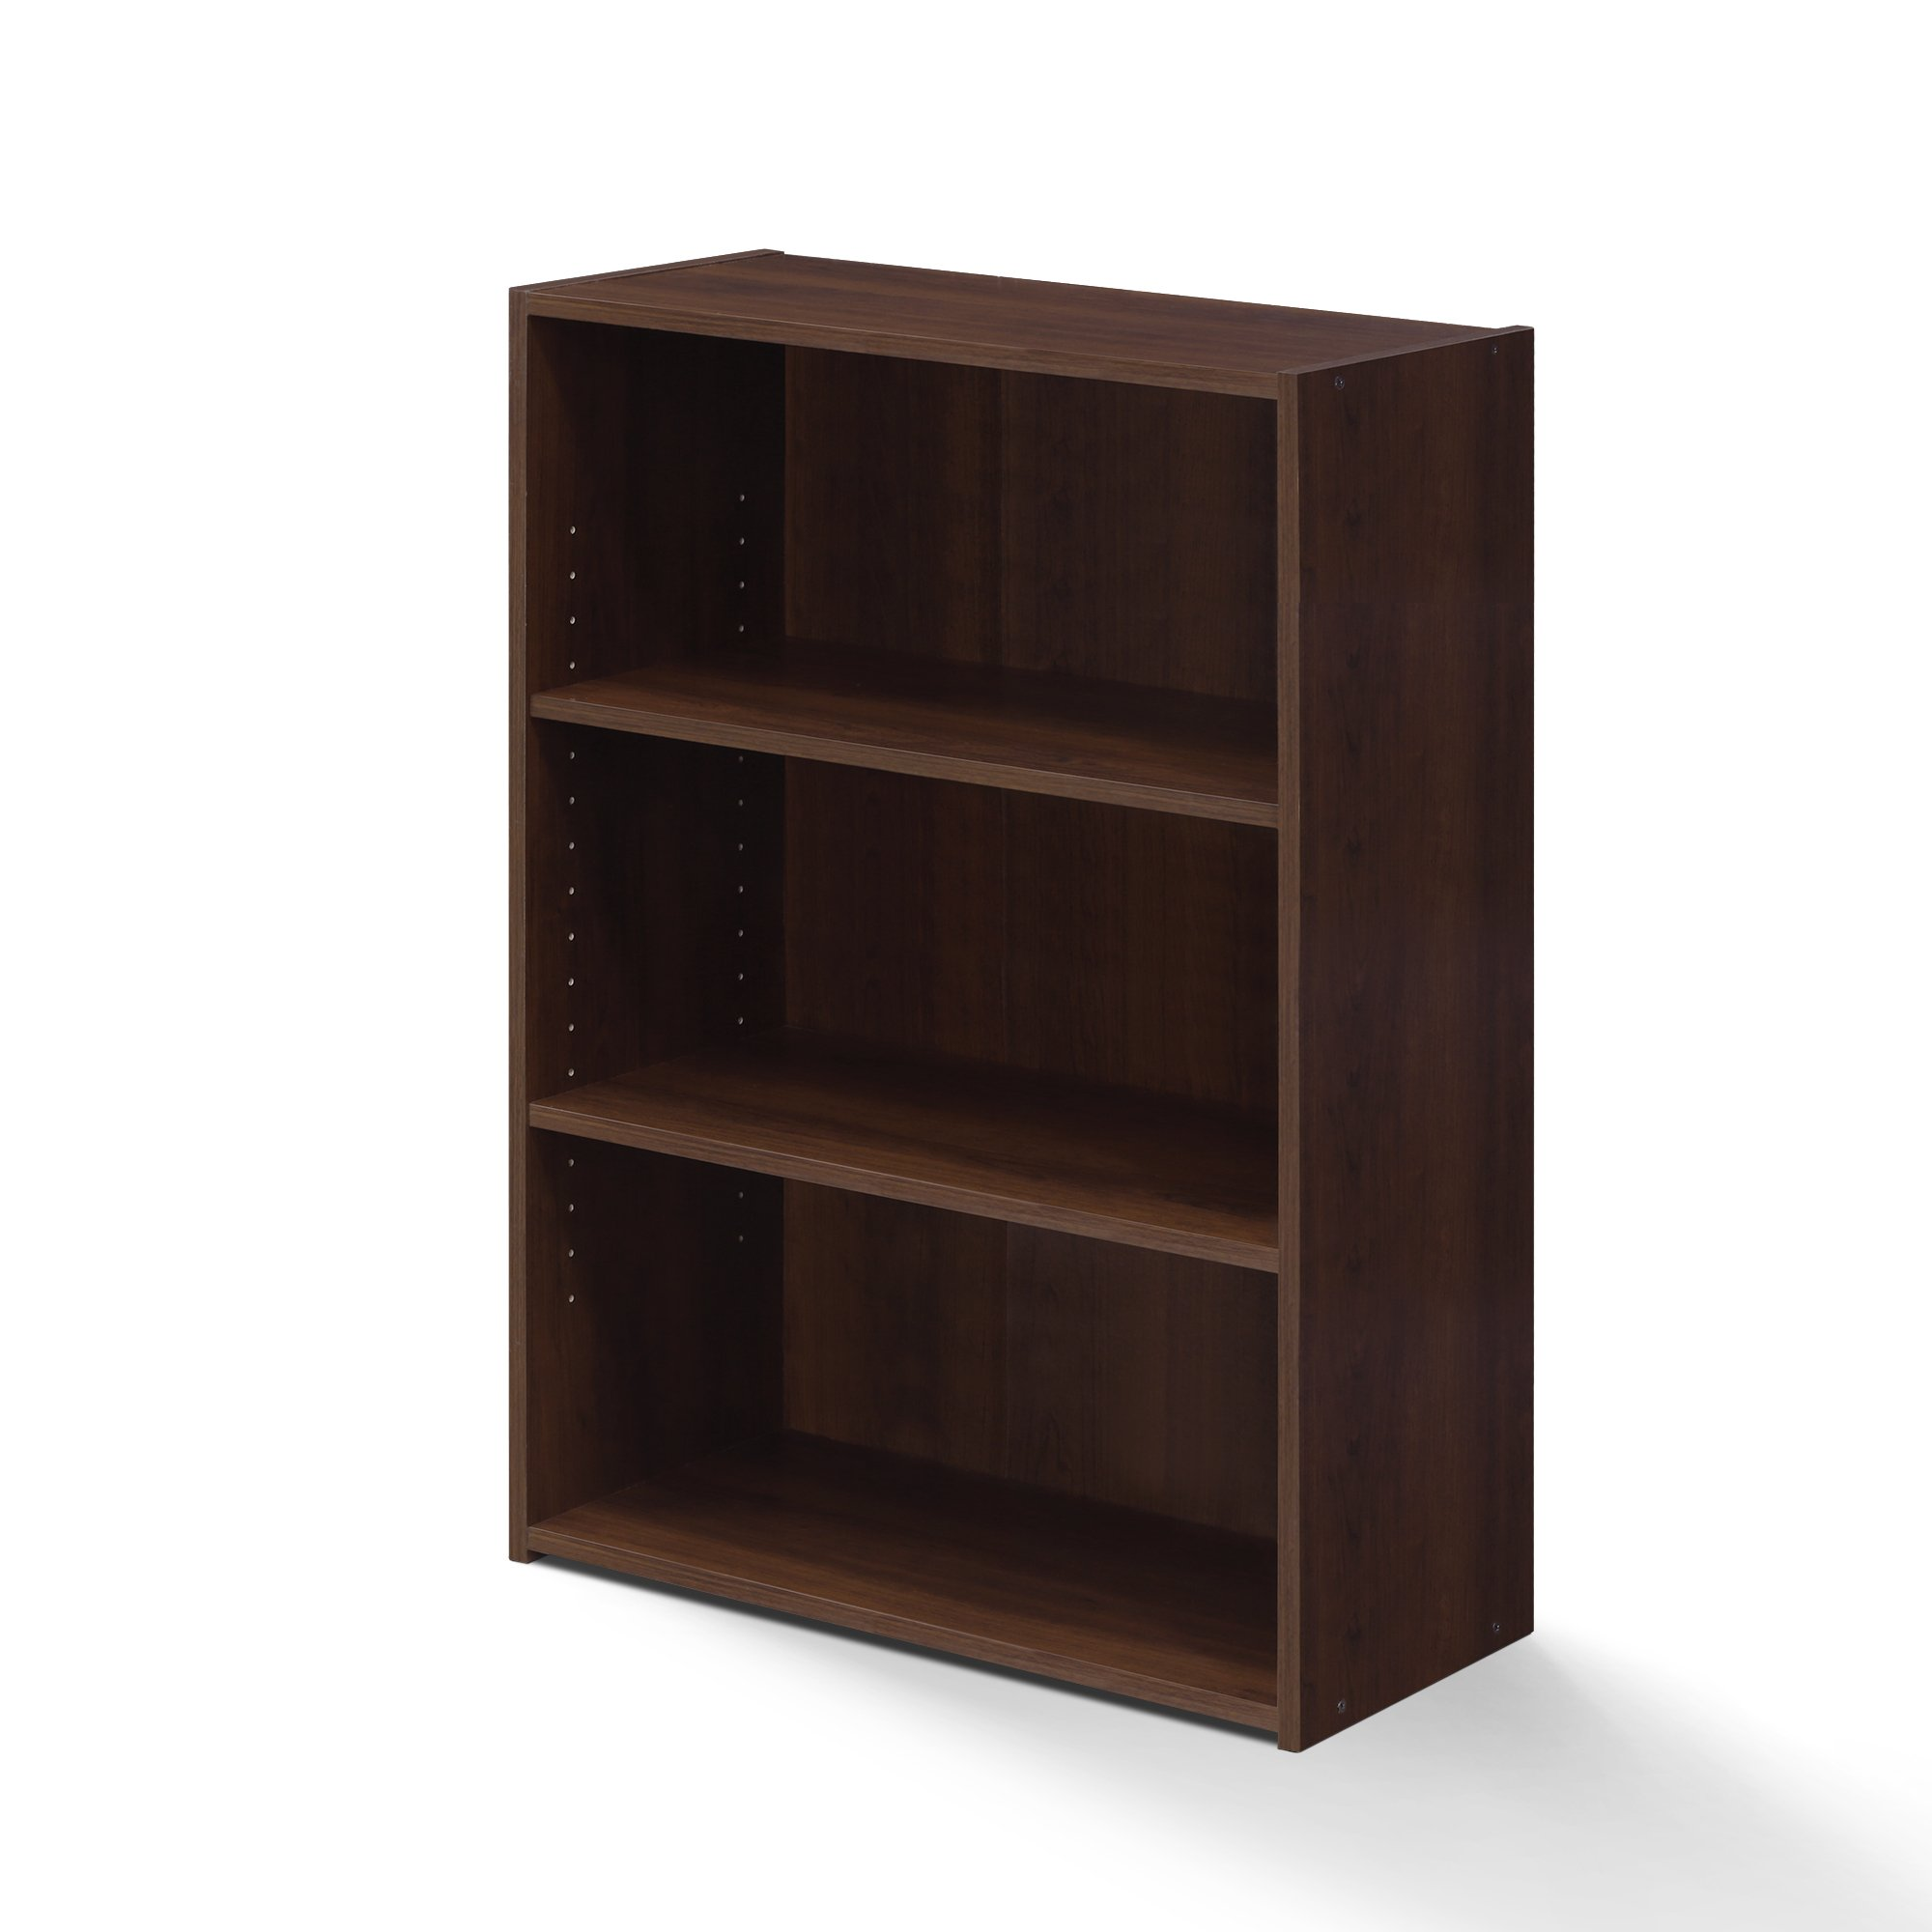 Furinno 17060BC 3 Bookcase, 3 Shelf, Brook Cherry